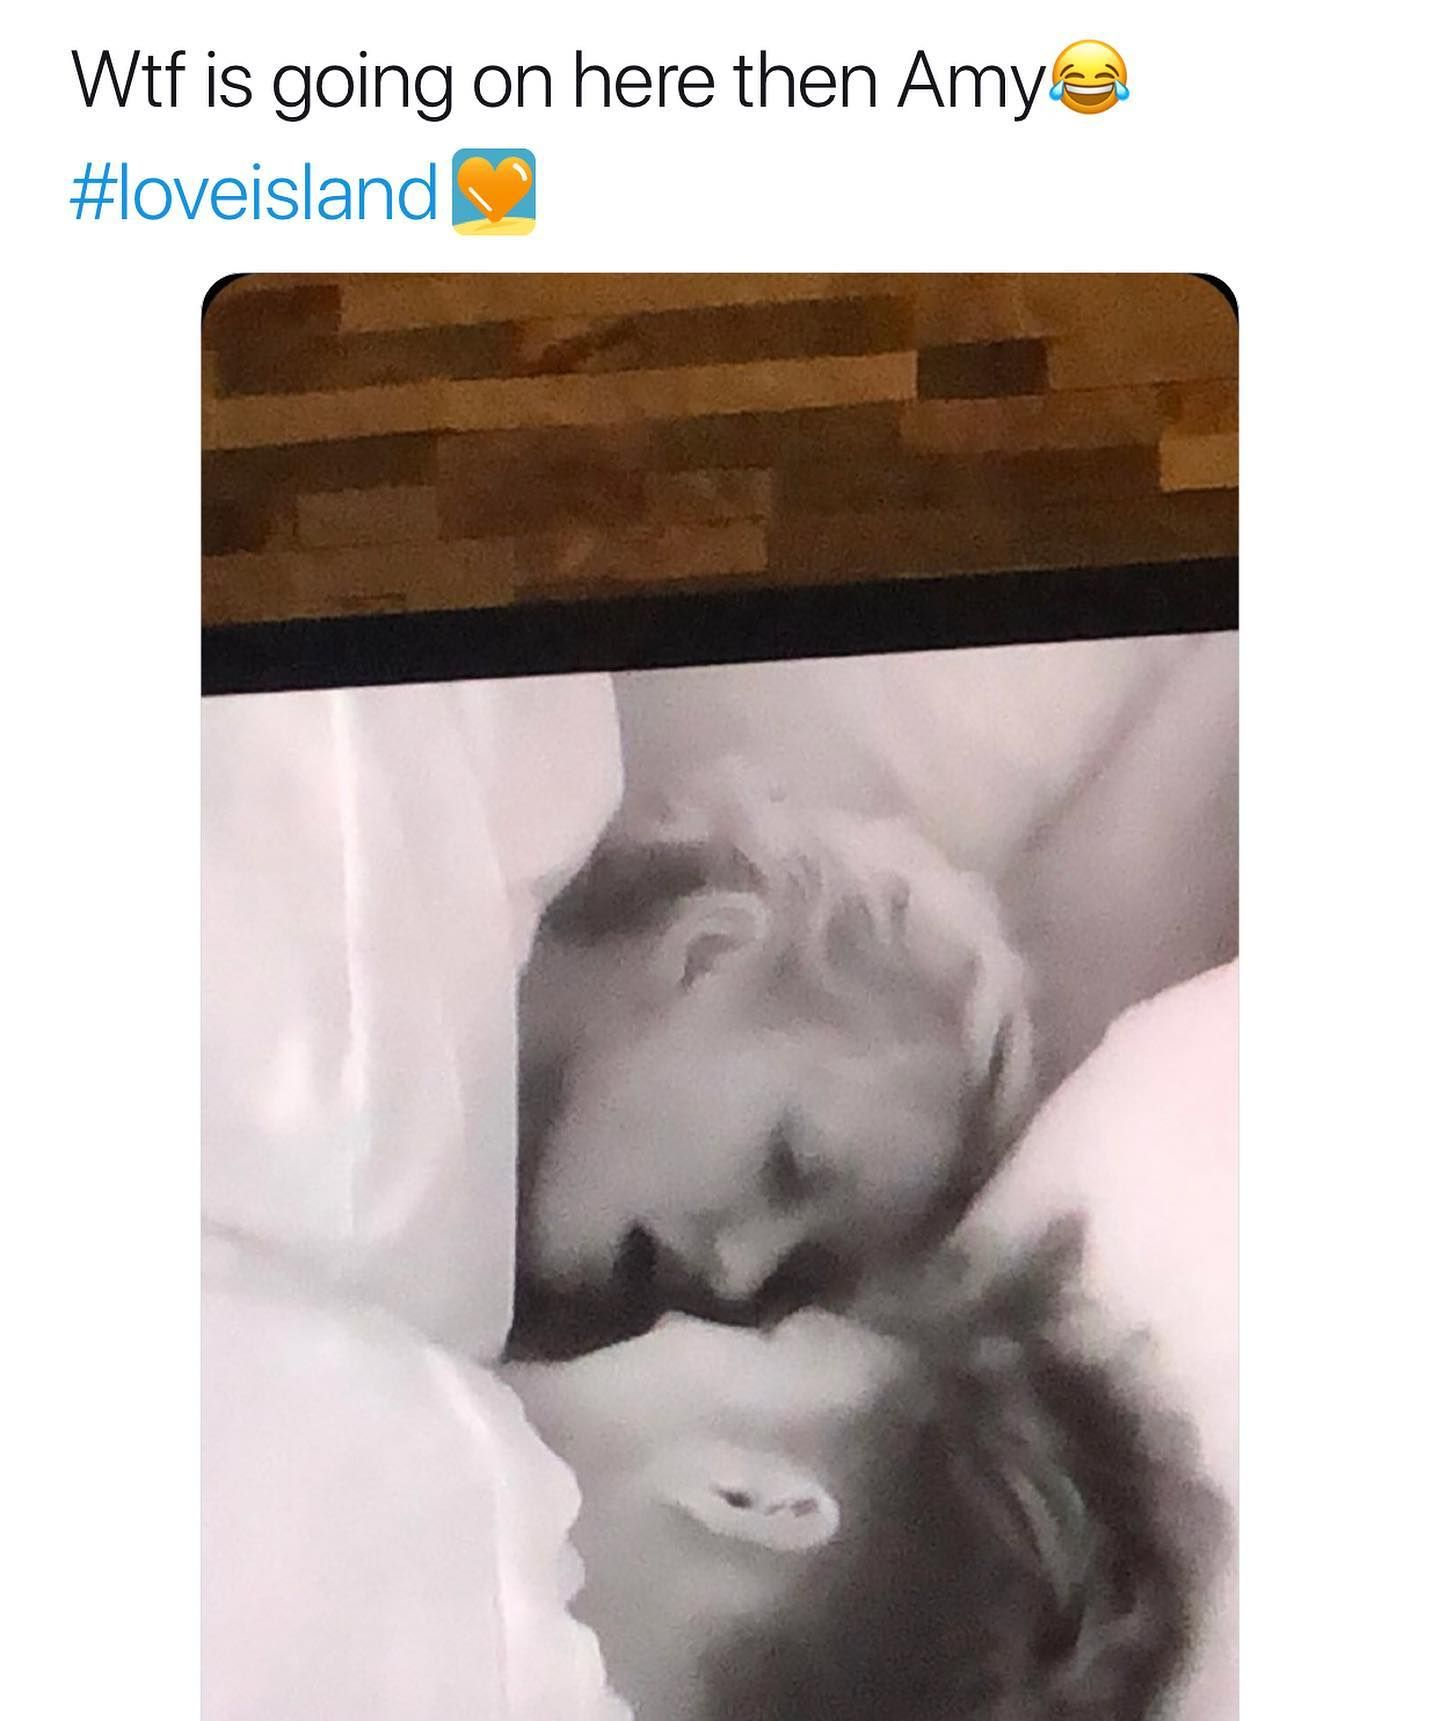 Image may contain: Love Island savage tweets, Love Island, memes, tweets, savage, online buzz, Art, Asleep, Sleeping, Human, Person, Diaper